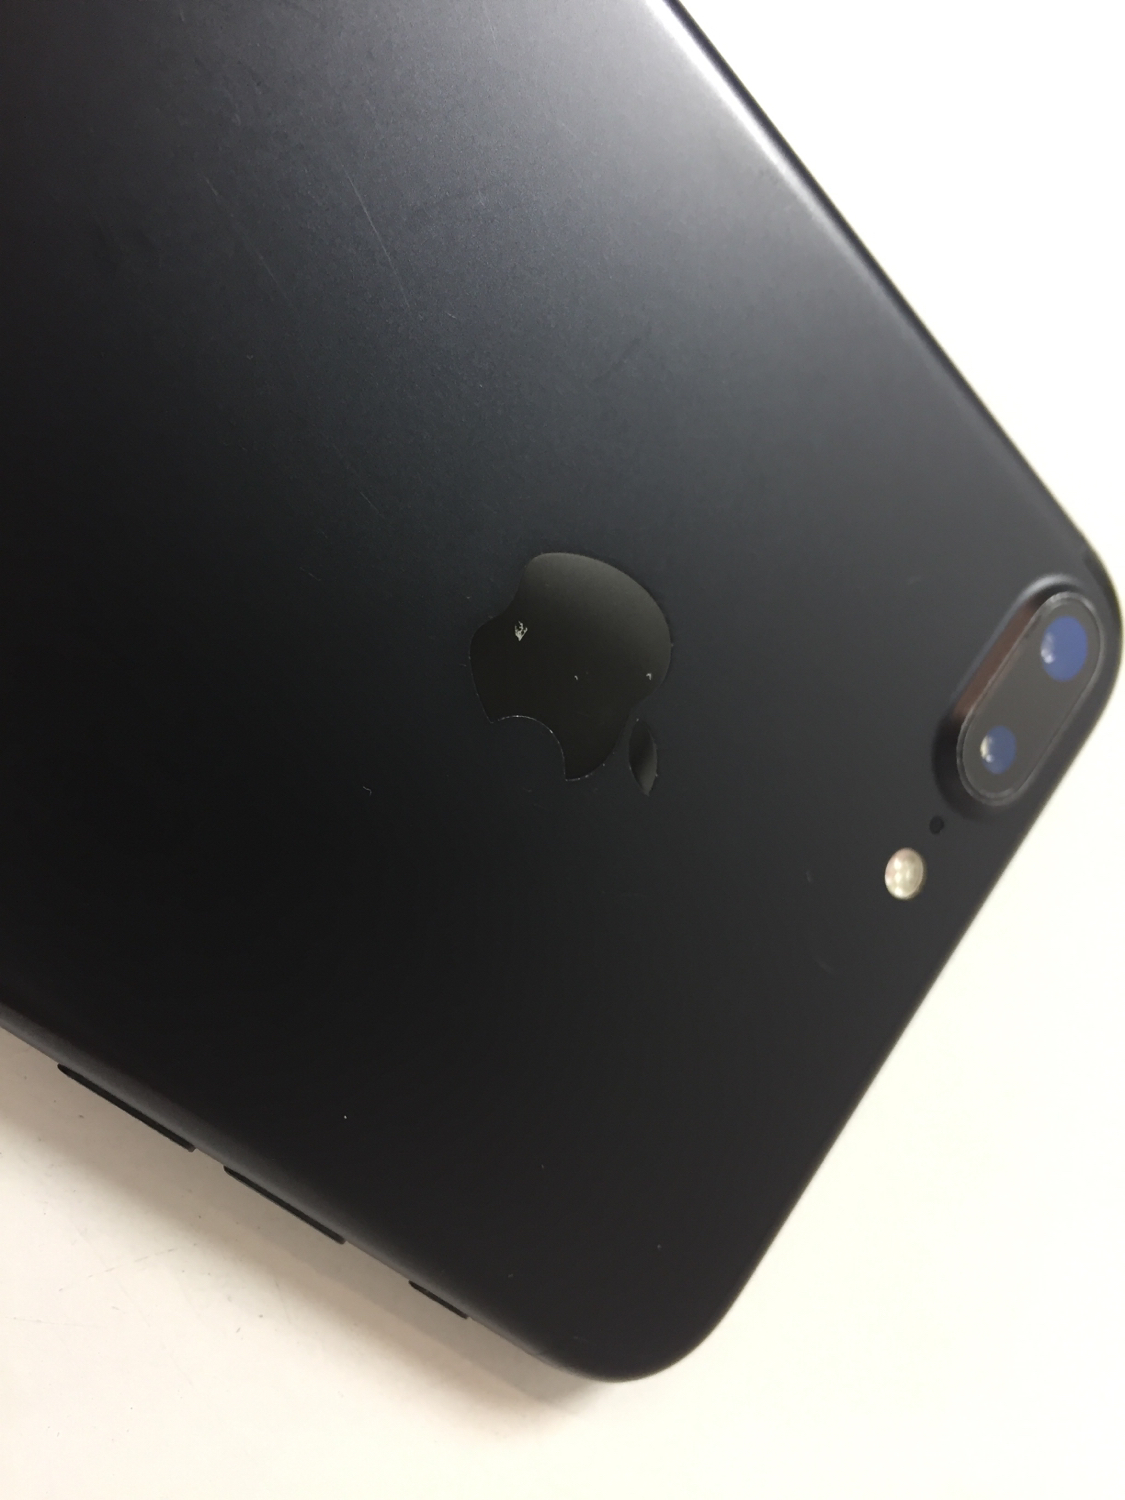 iPhone 7 Plus 32GB, 32 GB, Musta, Kuva 2